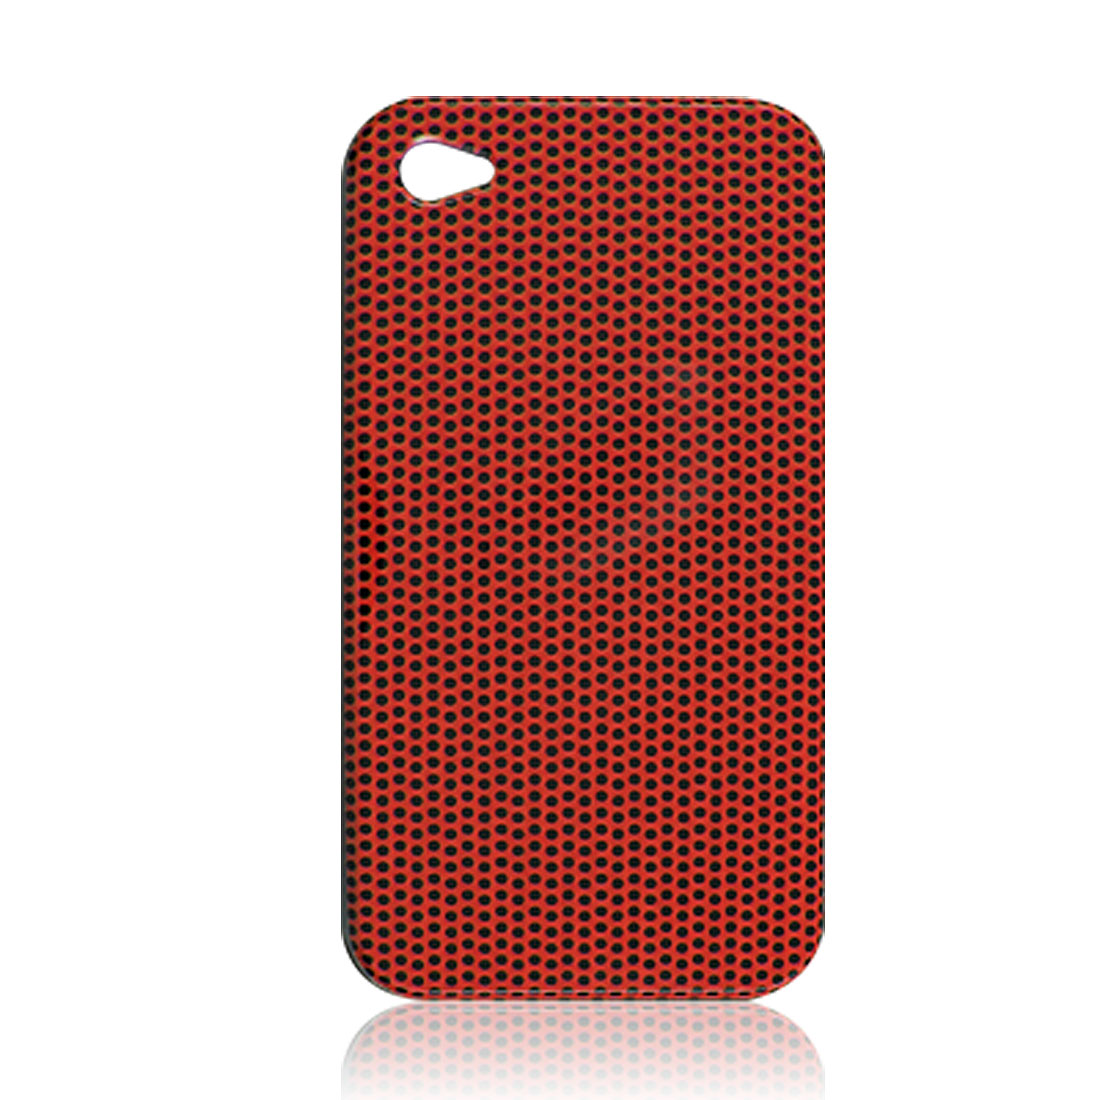 Orange Plastic Black Dot Pattern Back Case for iPhone 4 4G